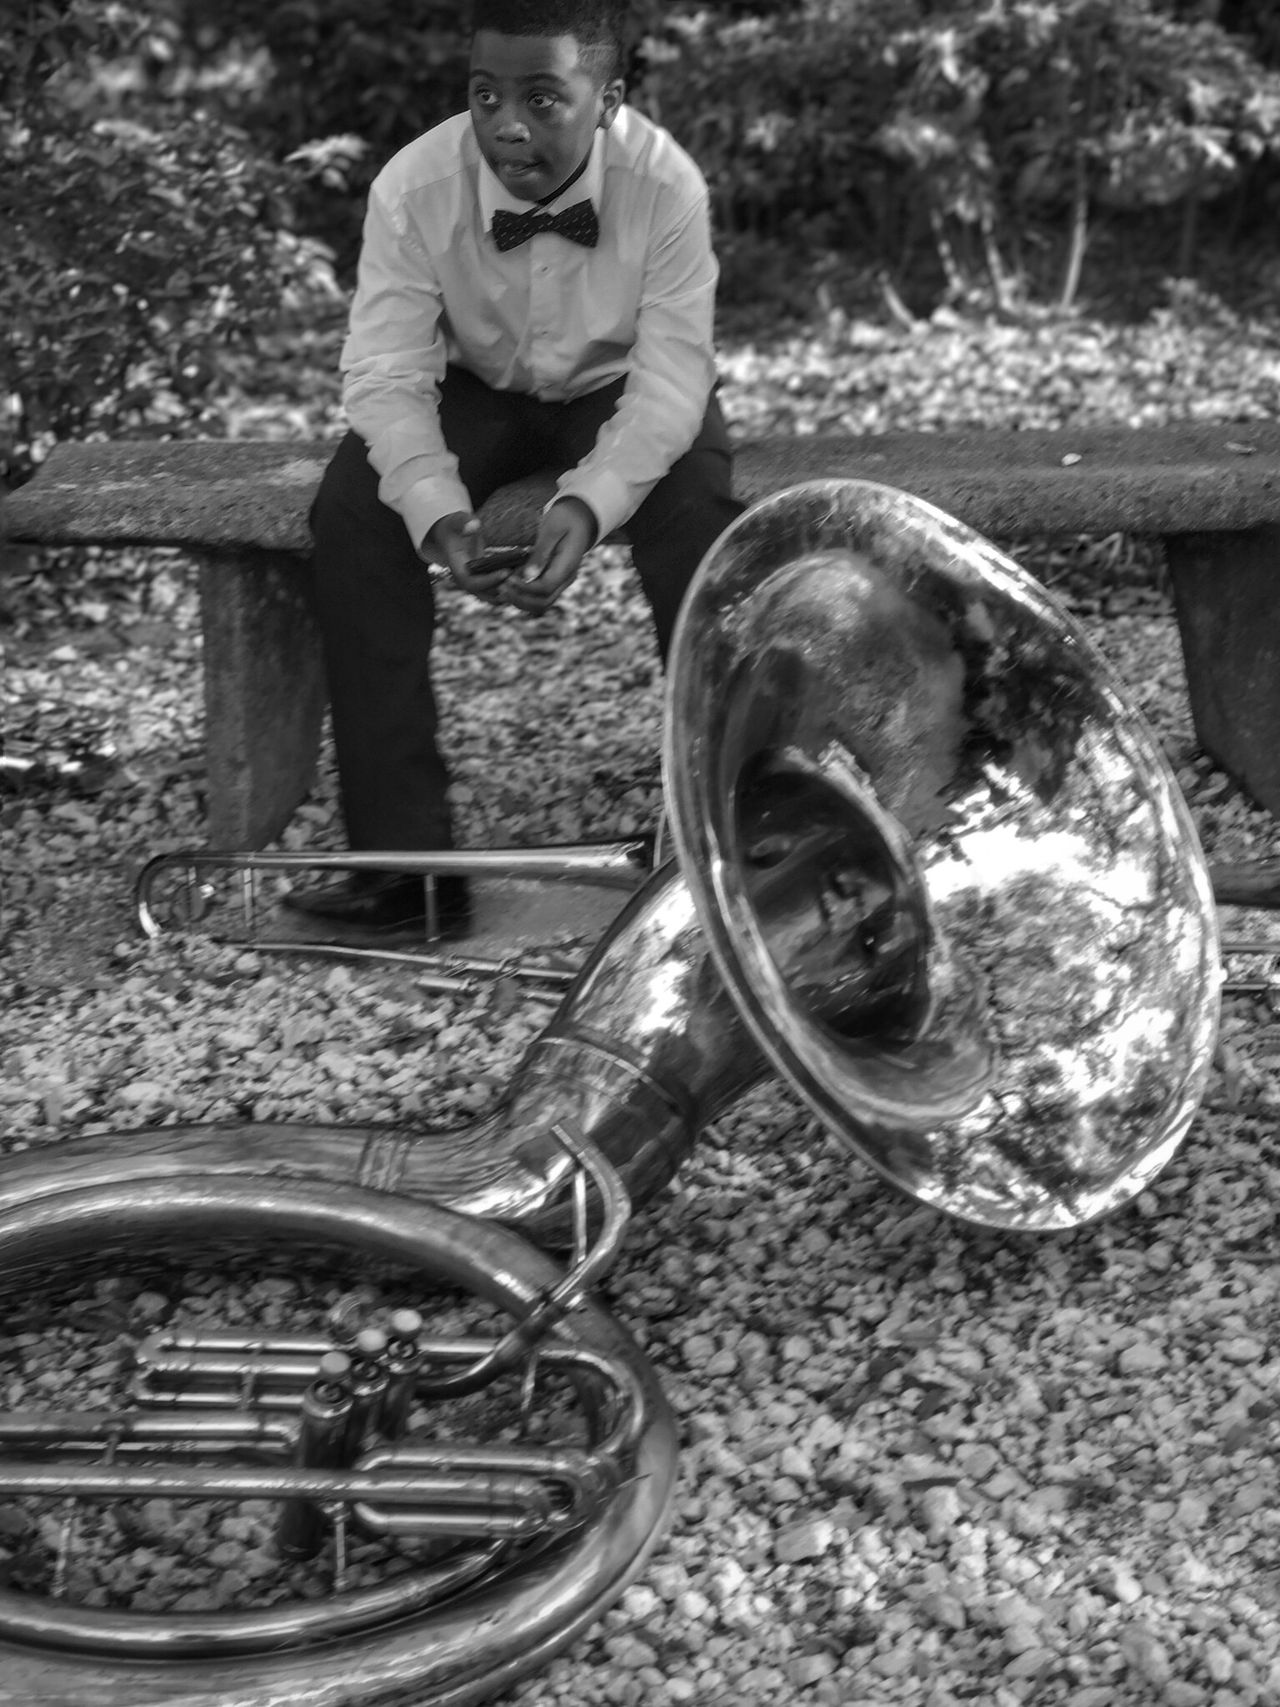 Band life. Somebodyhastoguardthetuba New Orleans Brass Instruments Sharp Dressed African American Cool Kid One Person Outdoors Musical Instrument Musicfestival Middle School Band Competition